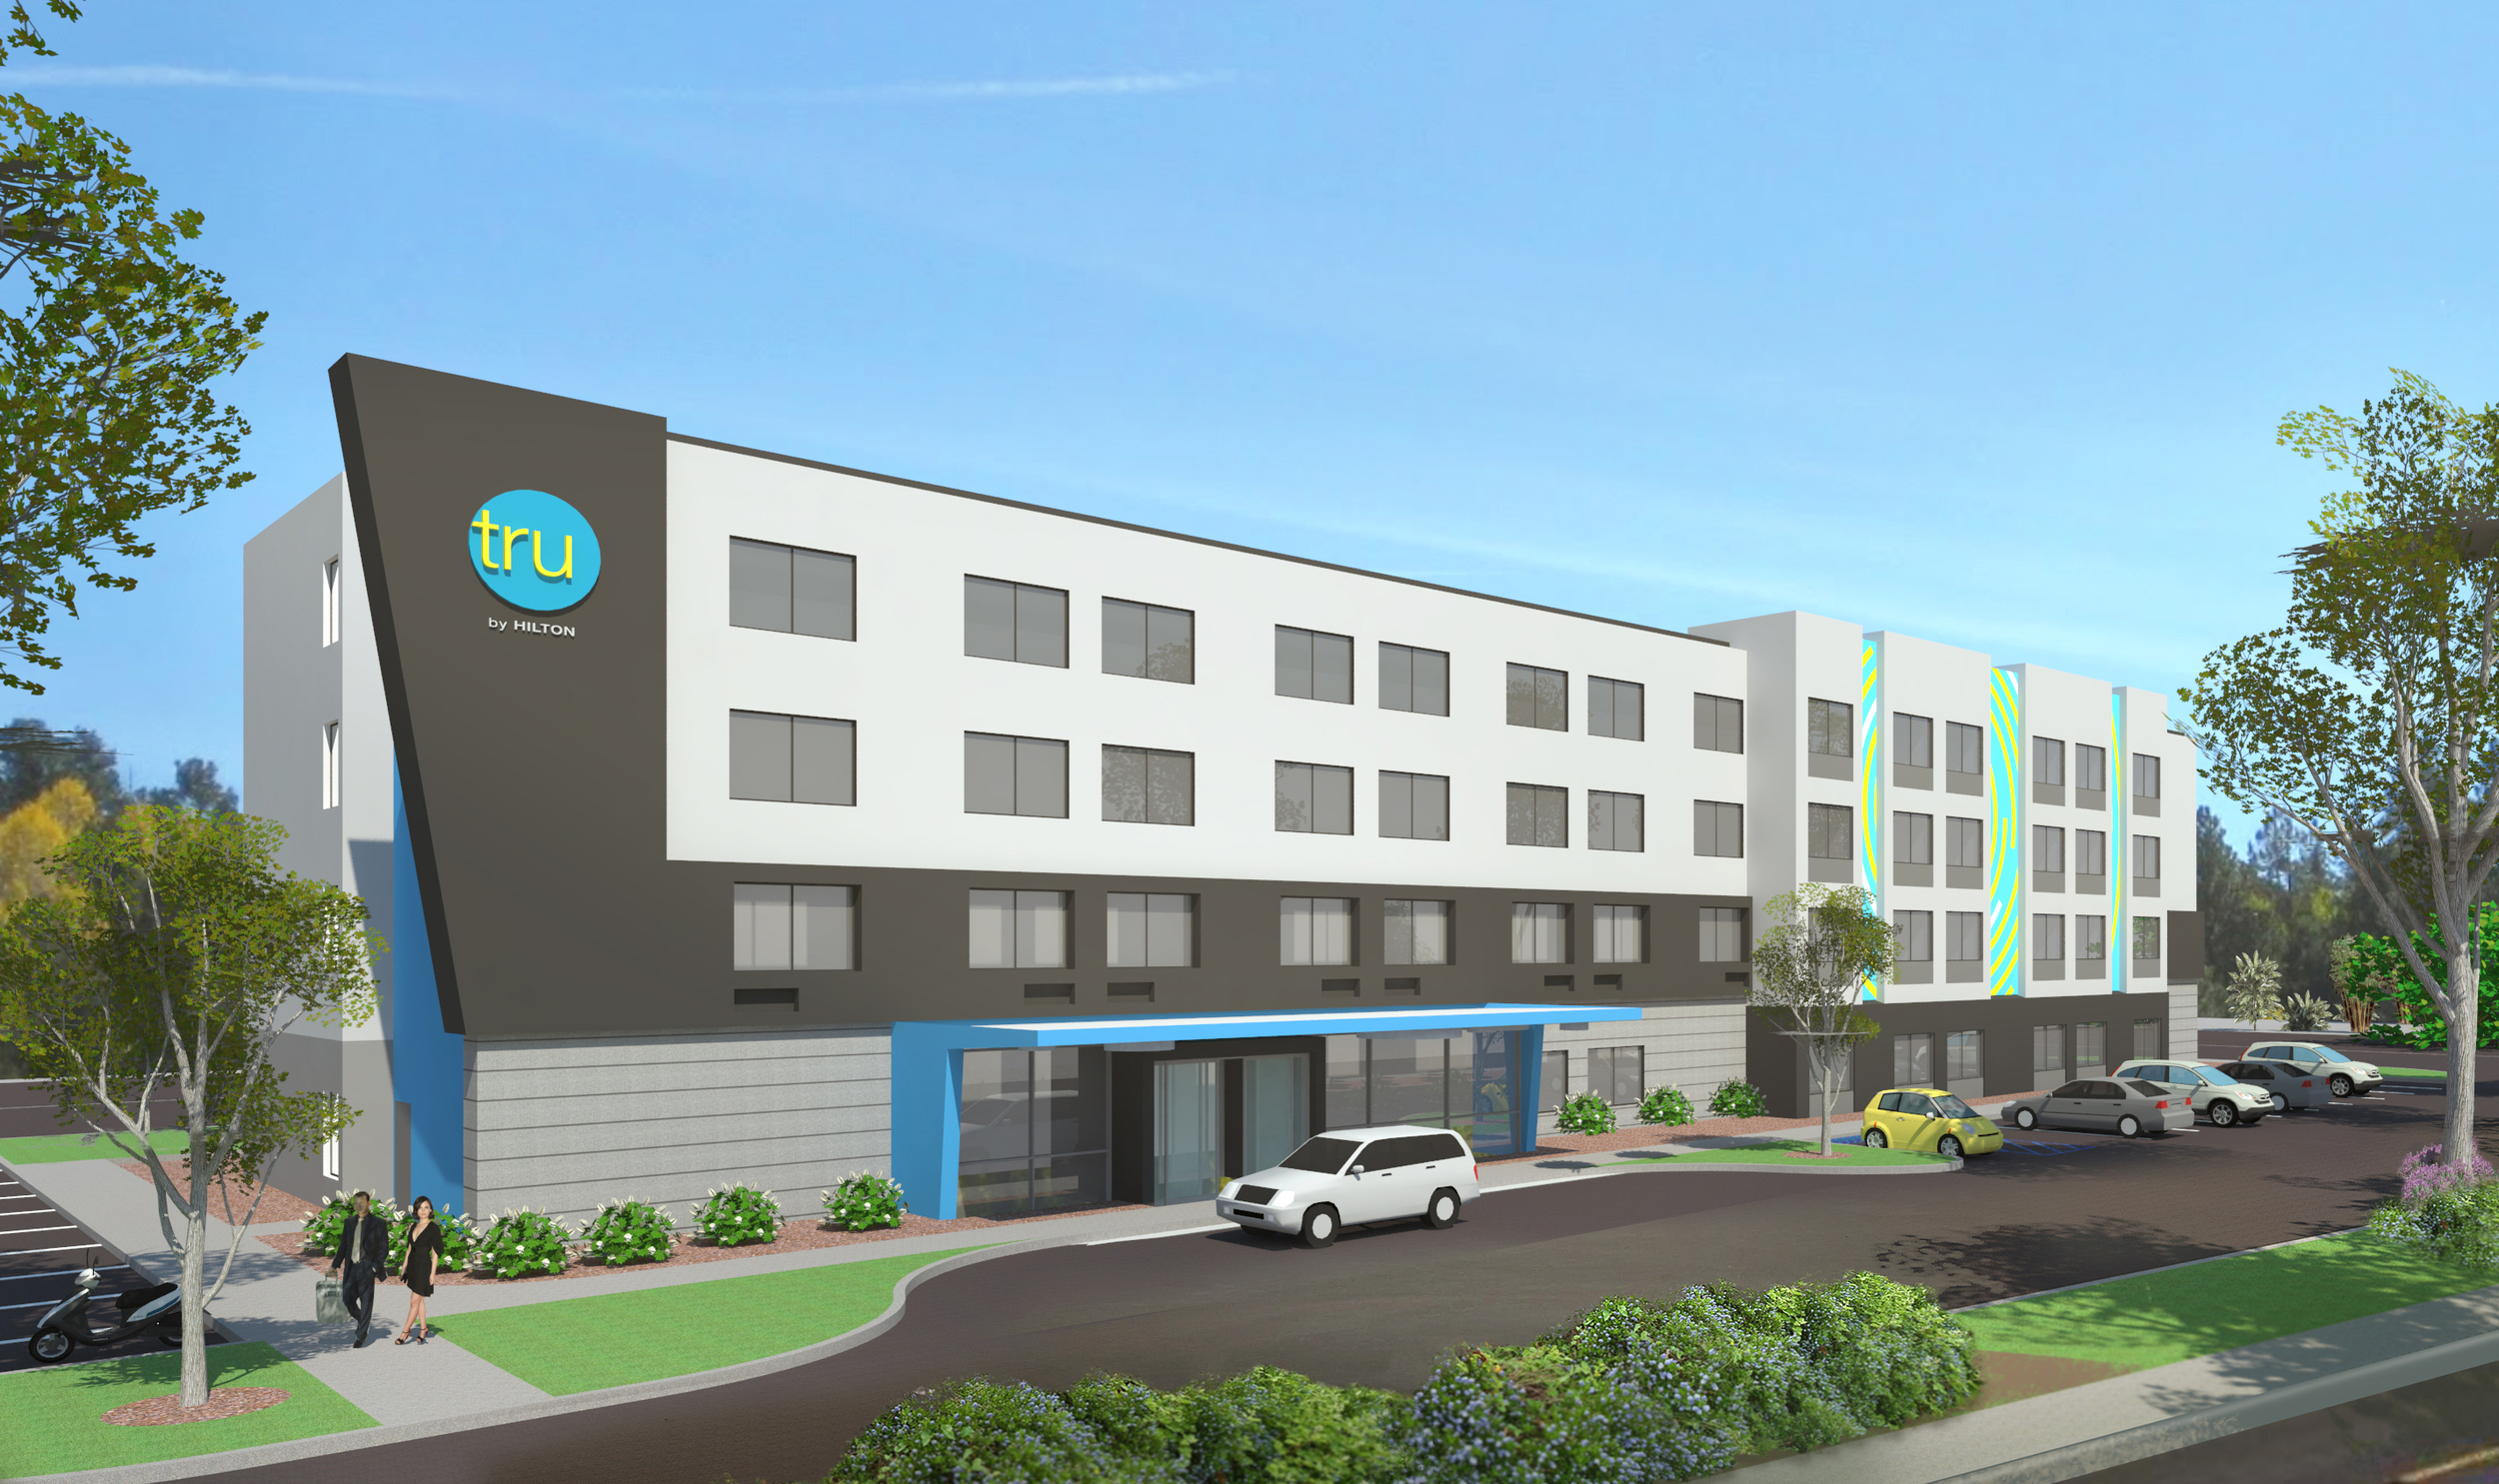 Hilton's Tru brand will launch later in 2016 and appears to be primarily targeted at millennials   (Photo  : © Hilton Worldwide)